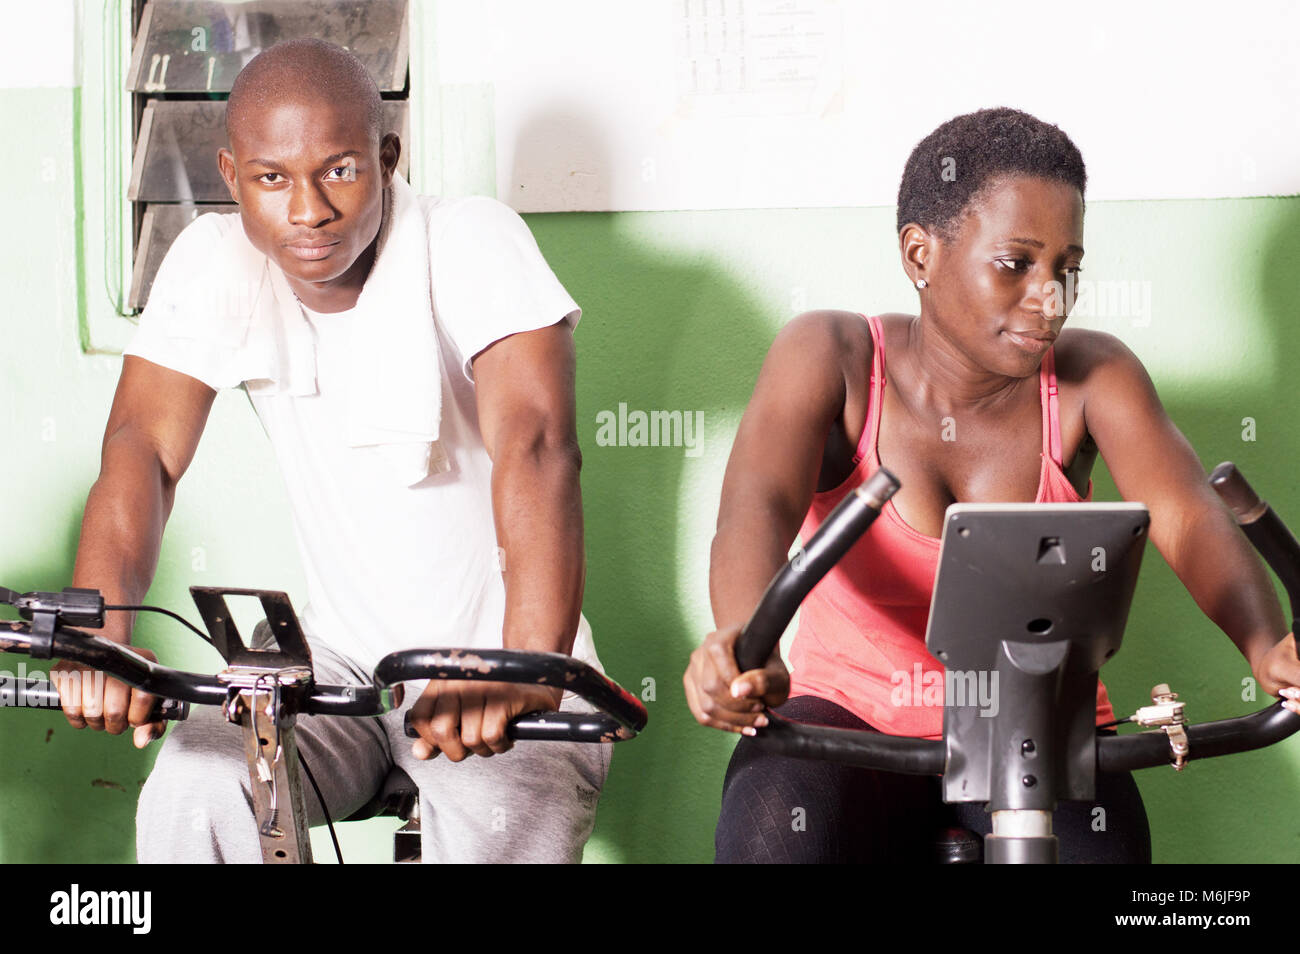 Young people working on exercise bikes in the gym to get fit. - Stock Image